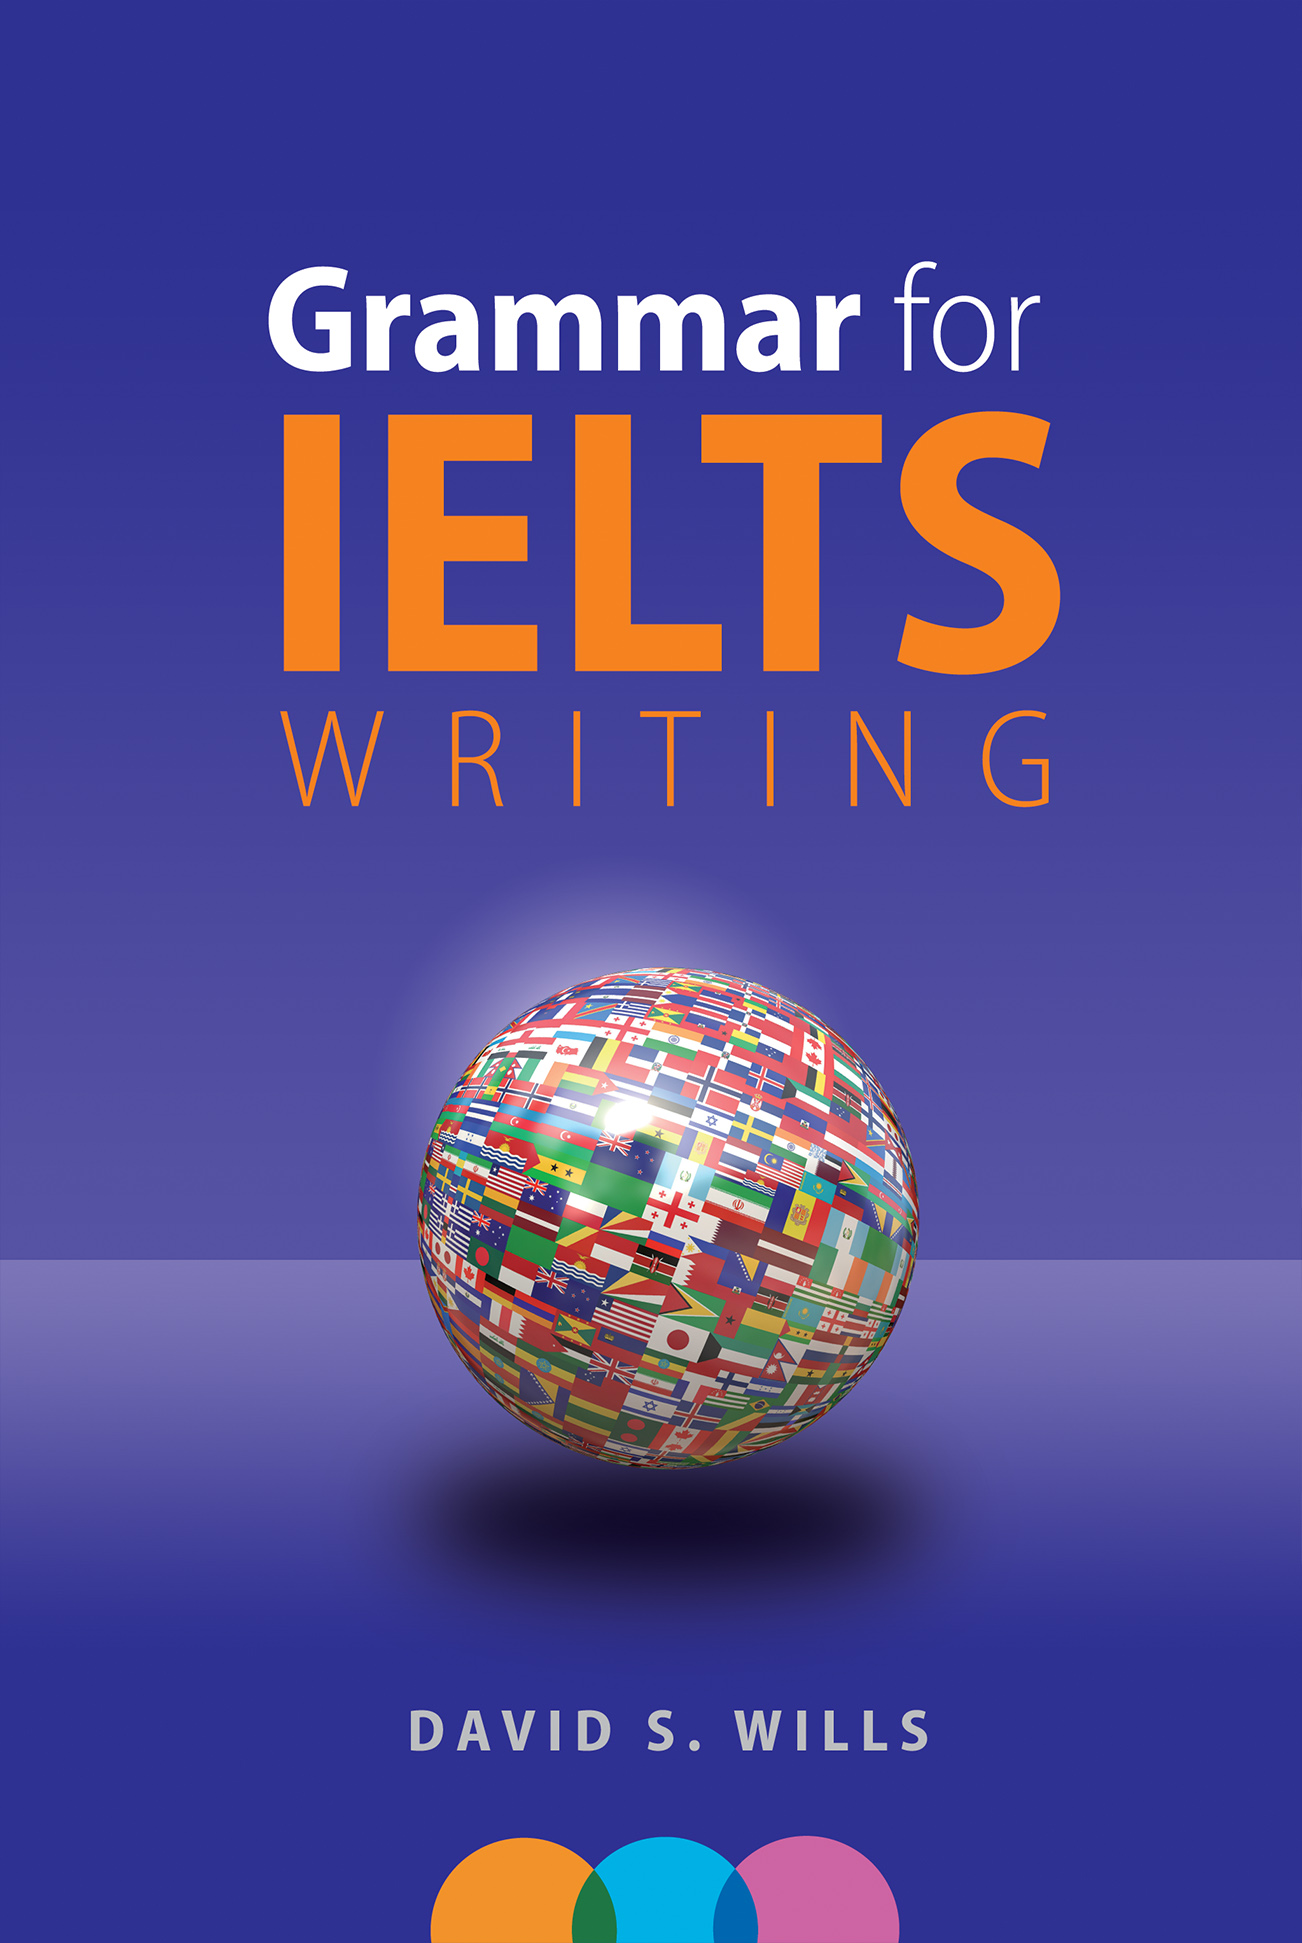 new cover Small - IELTS Topic: Money [Speaking, Writing, and Vocabulary]